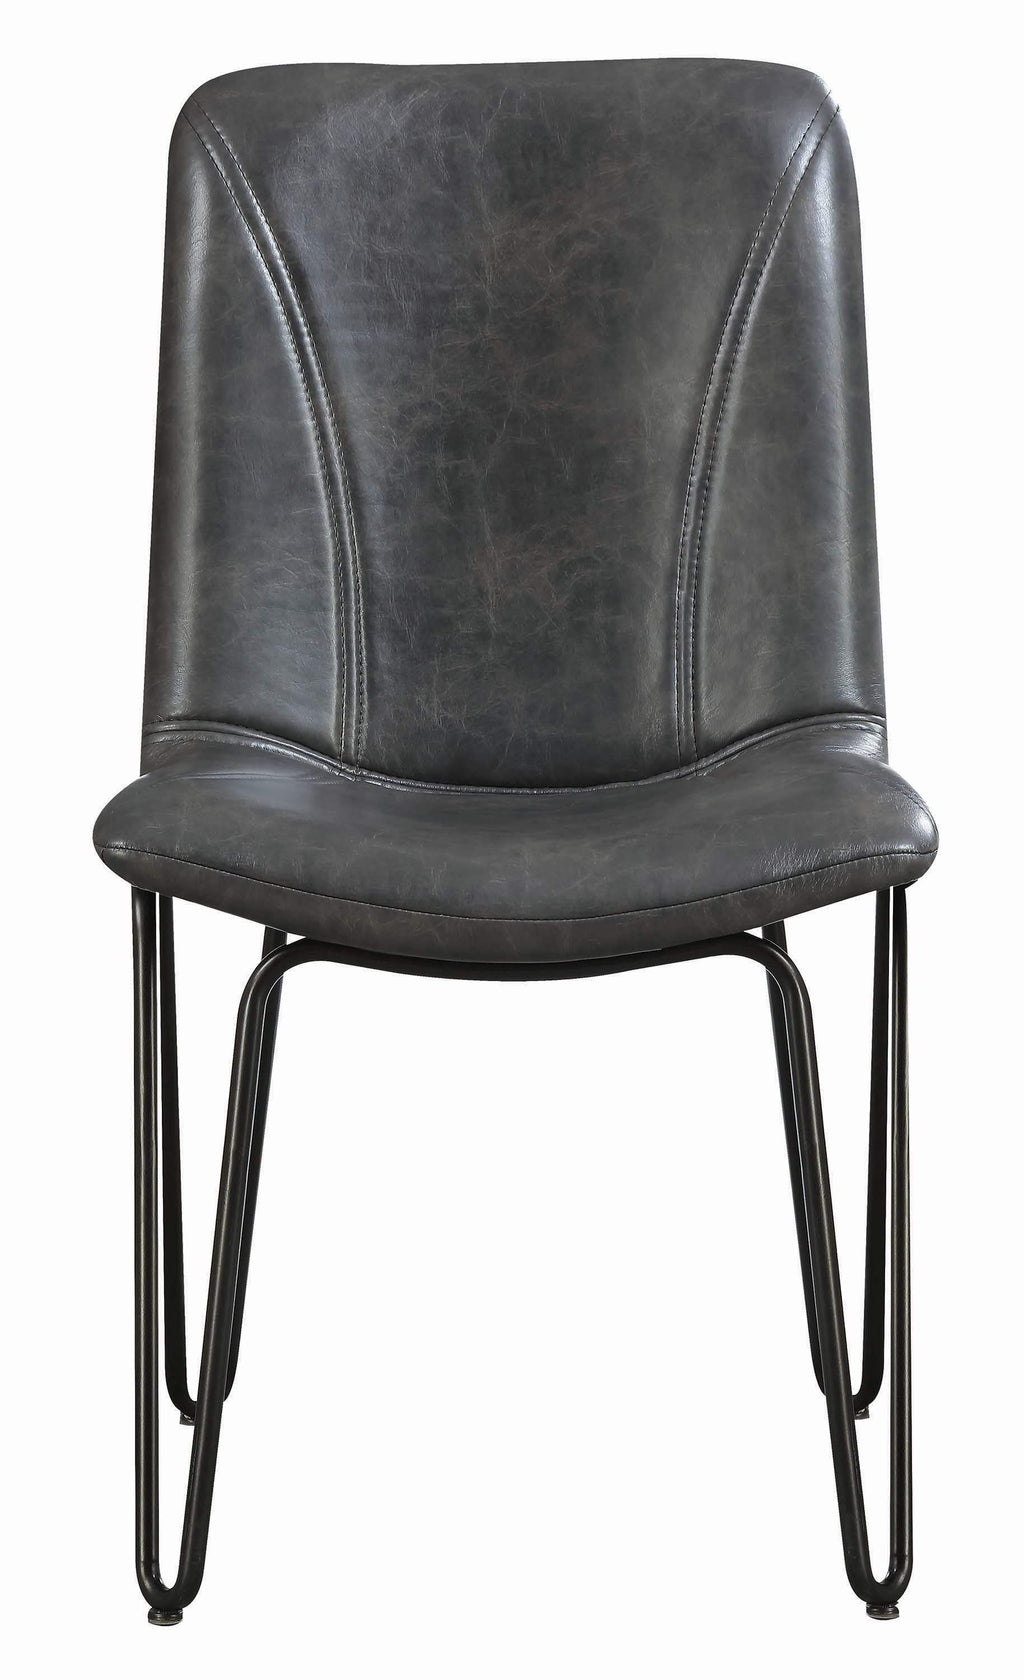 Chambler Grey Dining Chair - What A Room Furniture